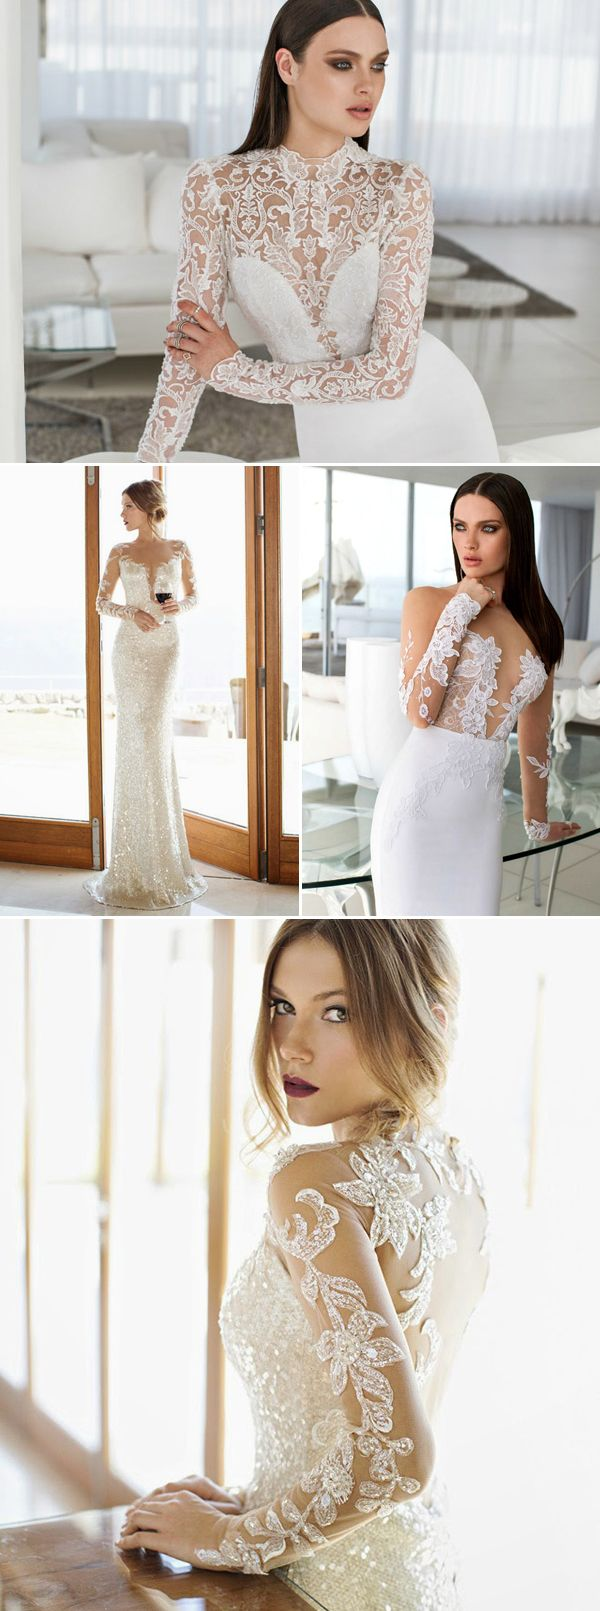 Sexiest Collection Ever! Top 10 Israeli Wedding Dress Designers We Love!